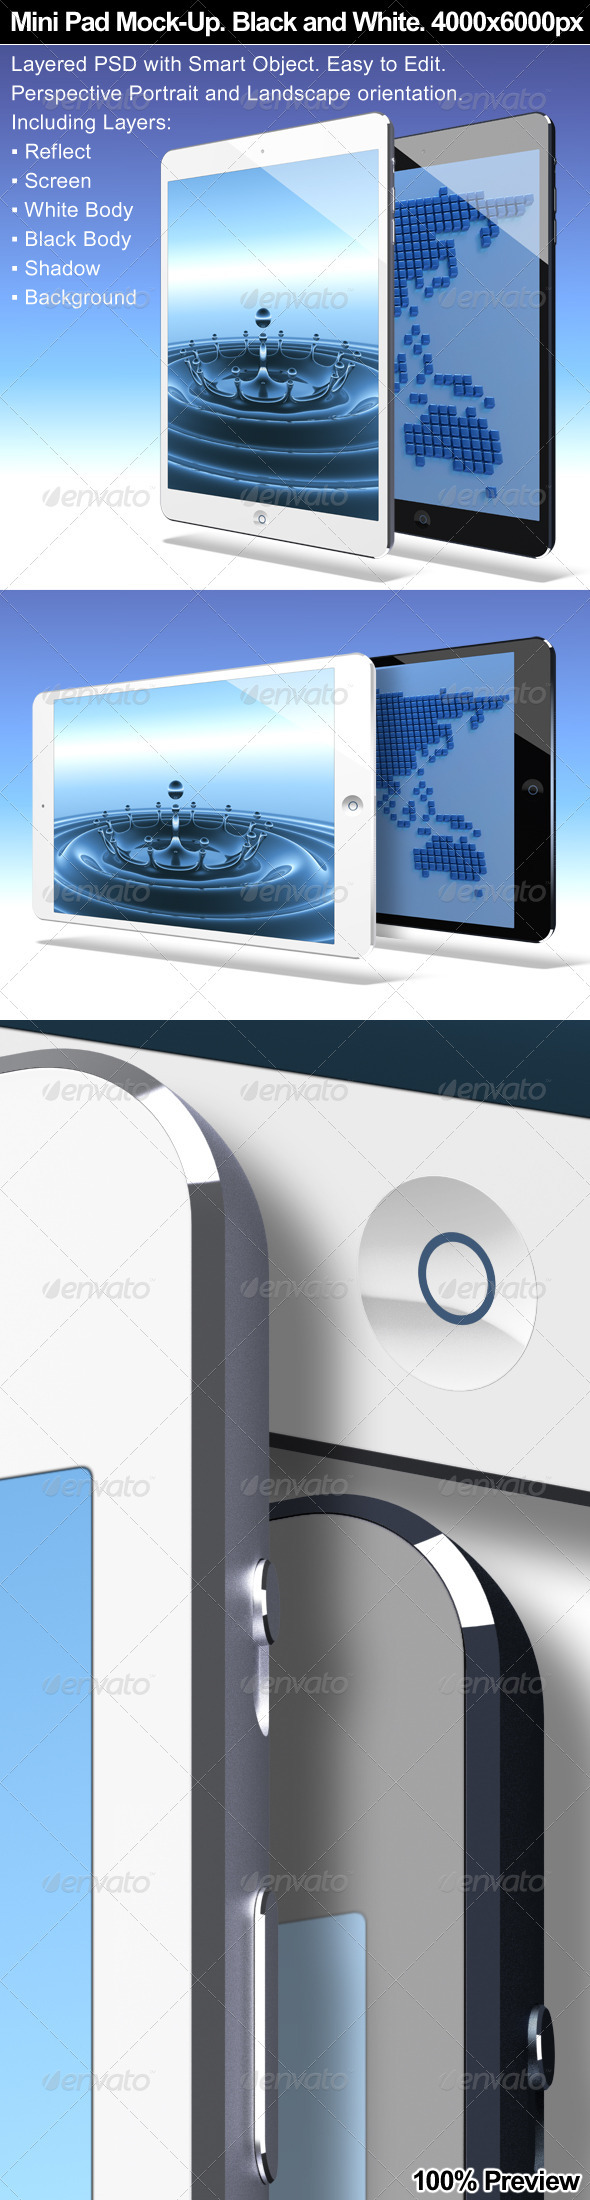 Mini Pad Tablet Mock-Up - Mobile Displays